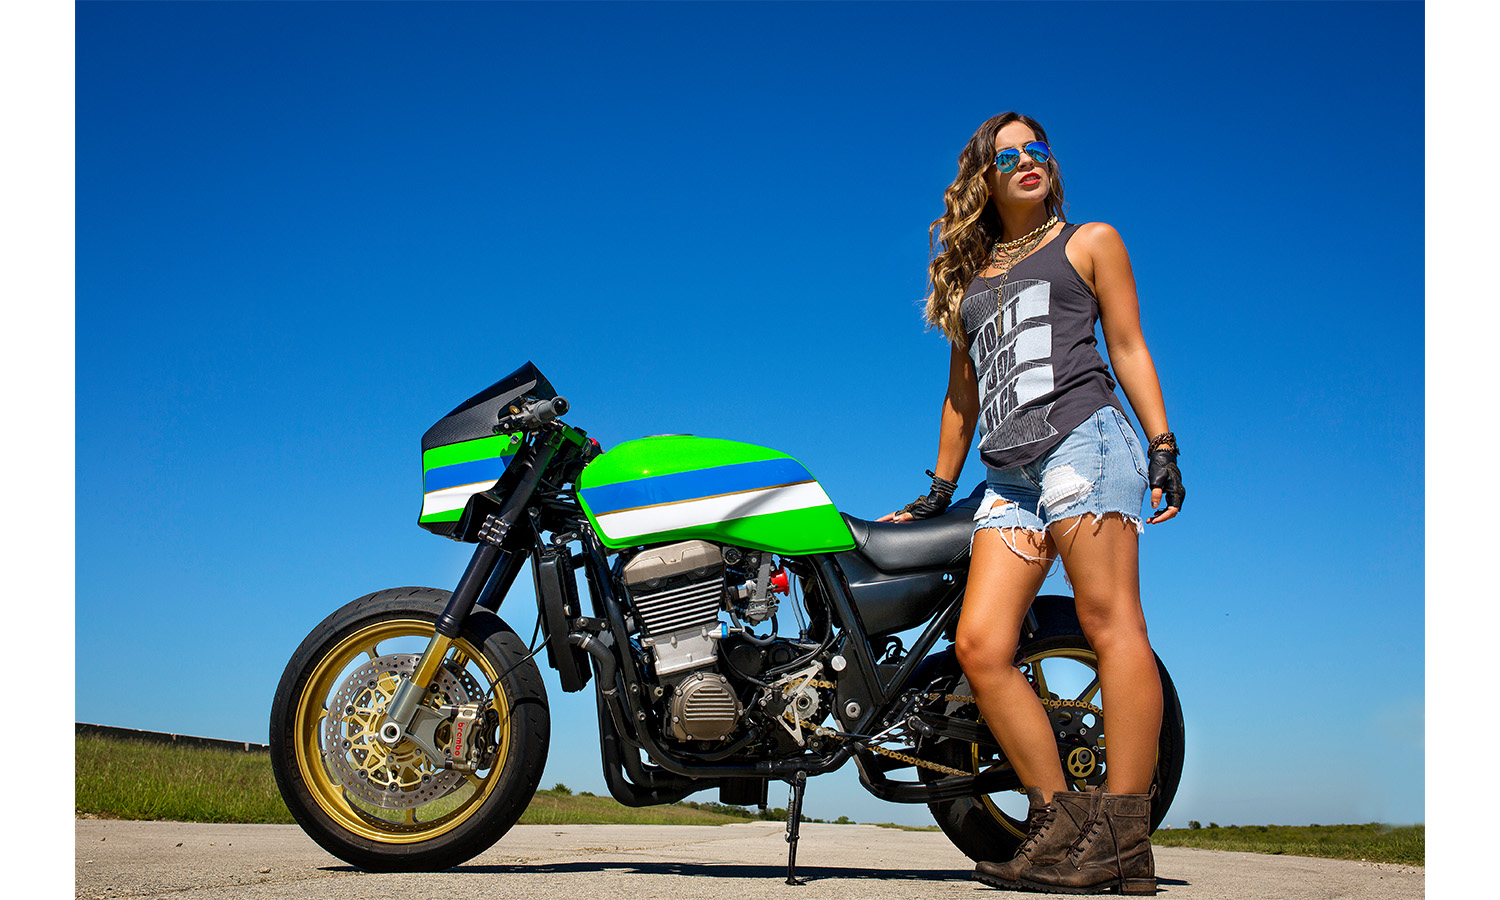 portrait of woman with motorcycle